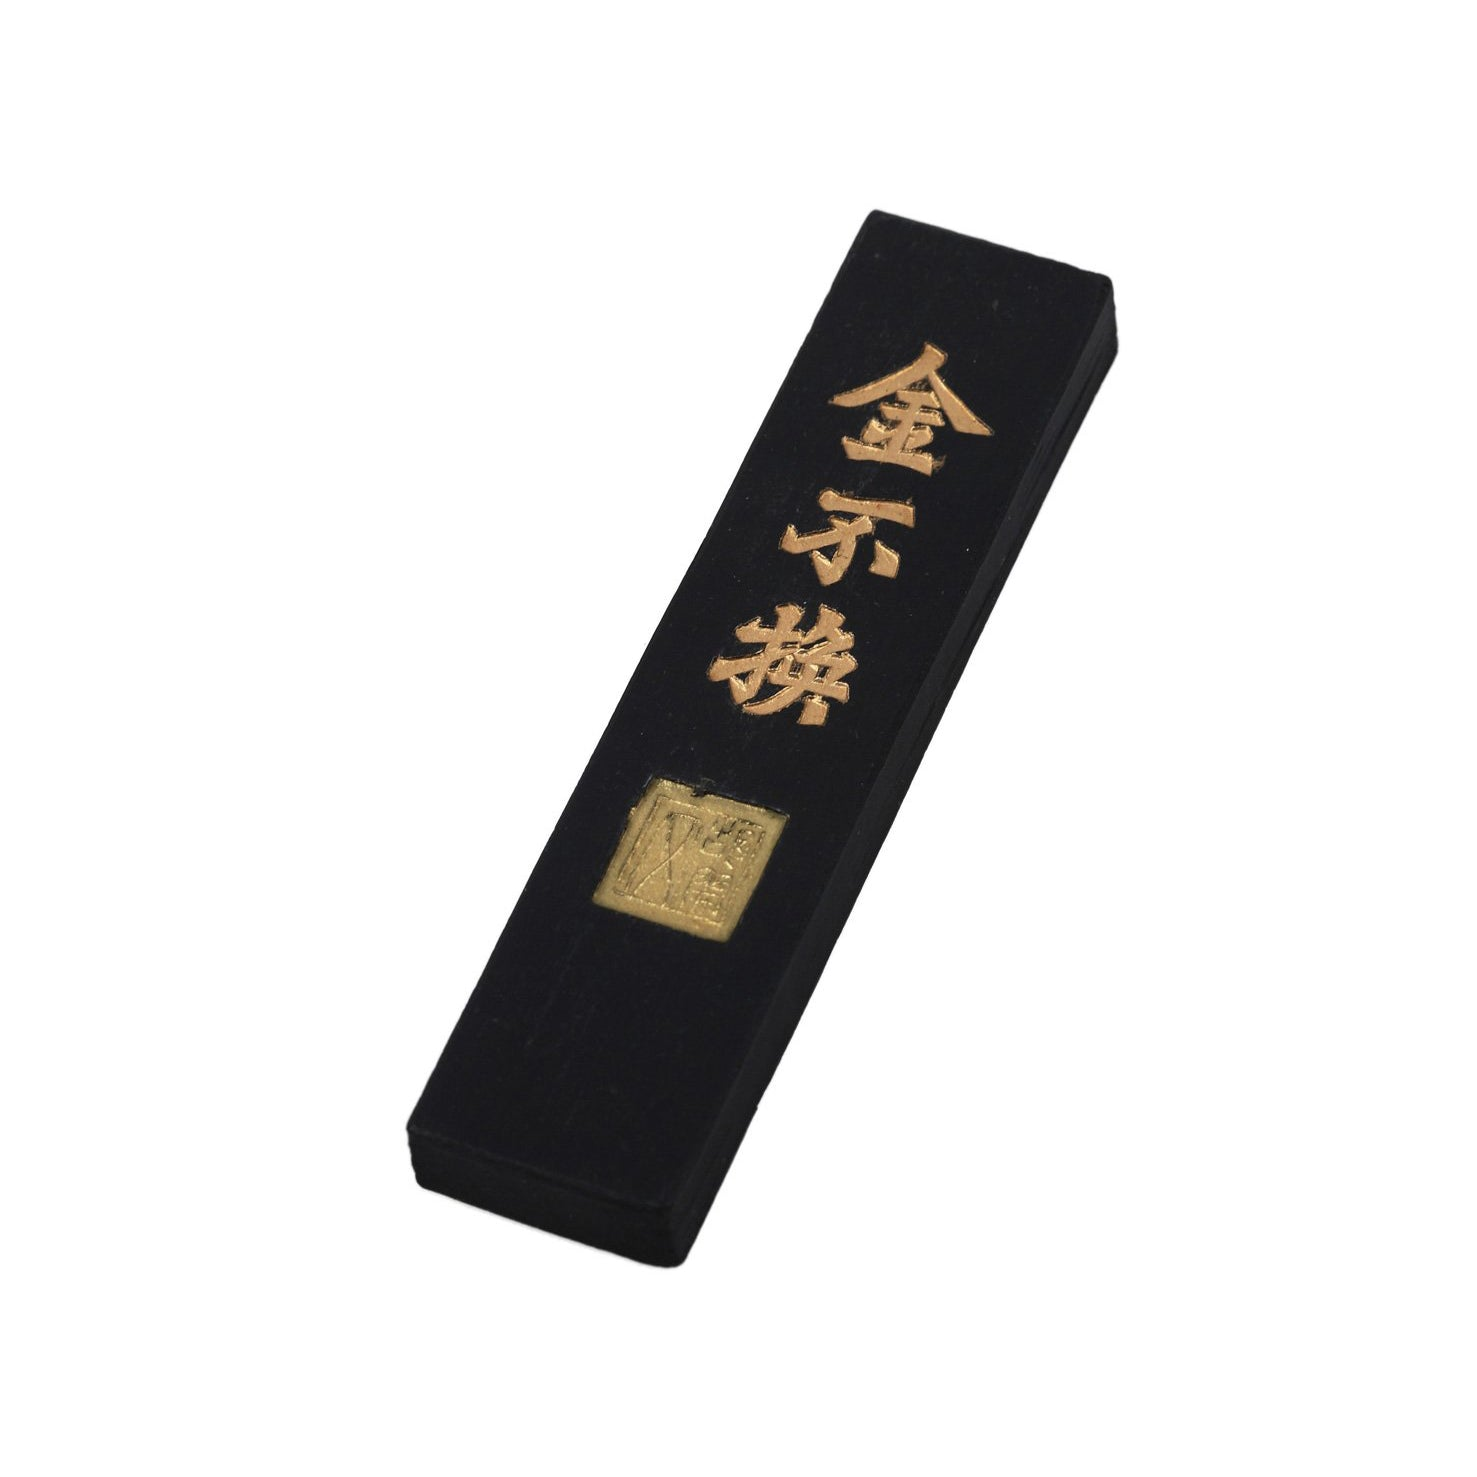 Chinese practice calligraphy, shodo, kanji and sumi ink stick with the manufacturer name carved into the black body of the ink stick.